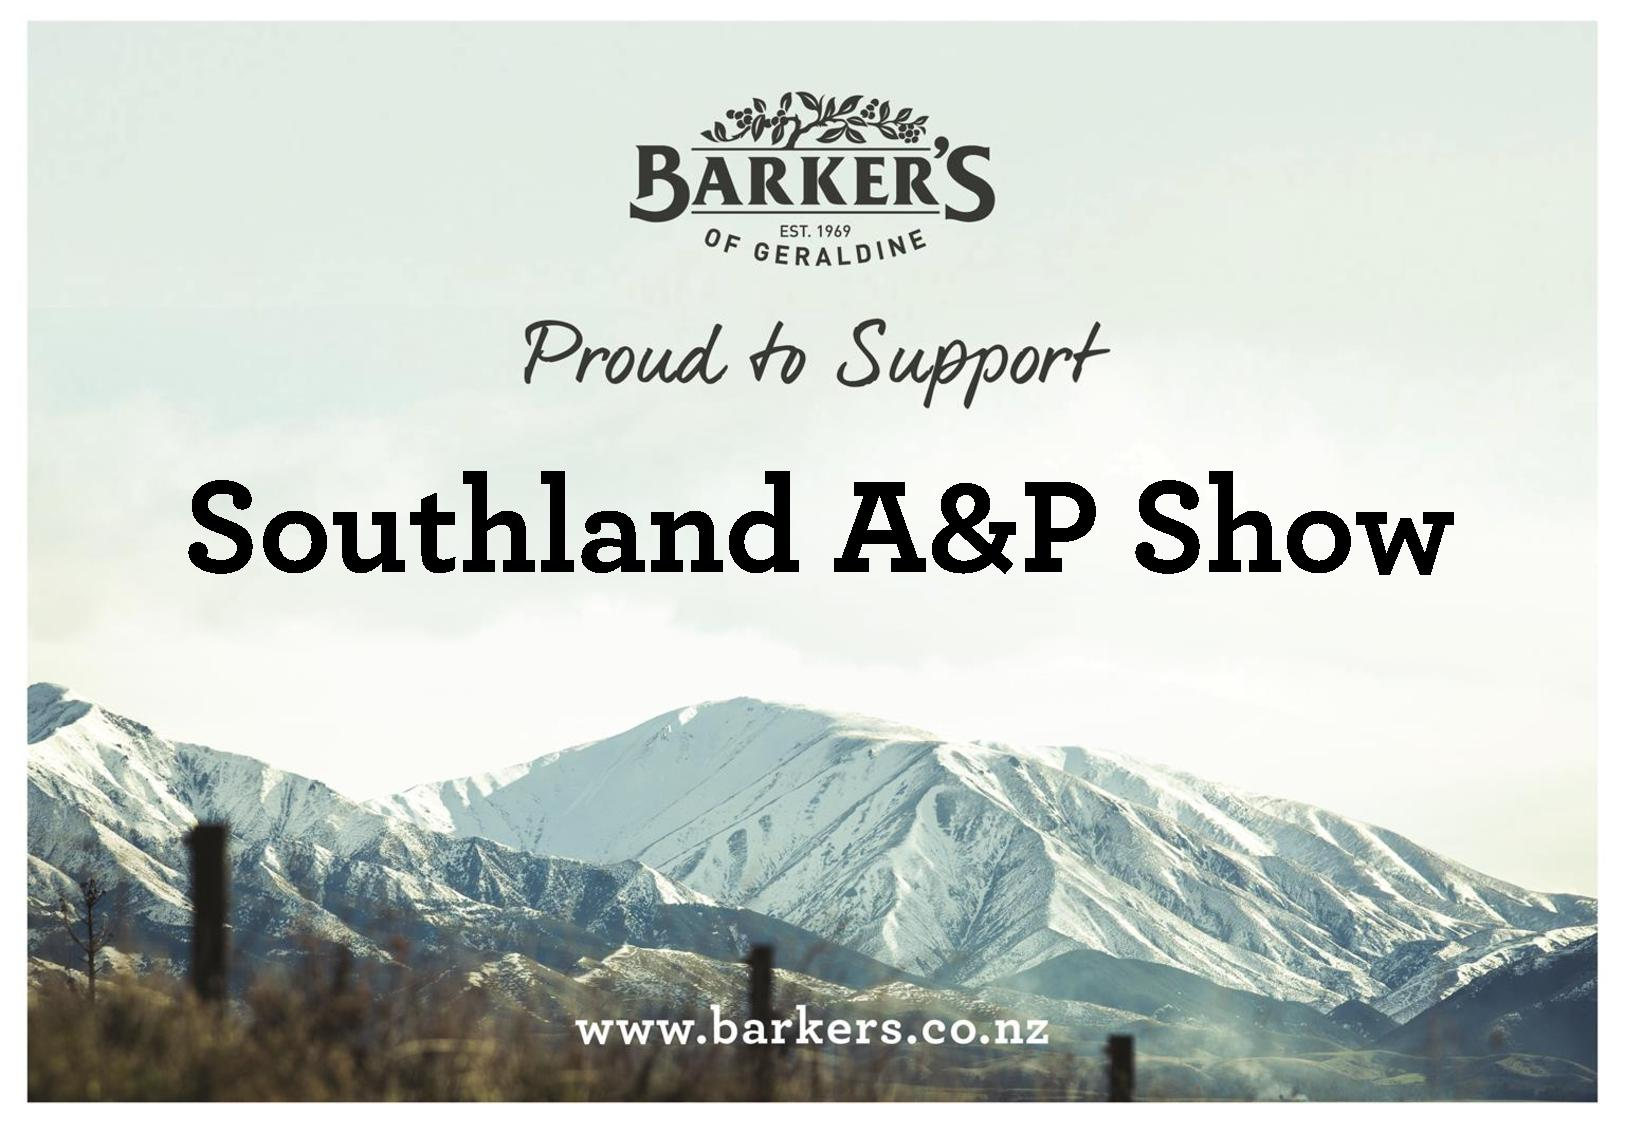 southland-ap-show-page-001